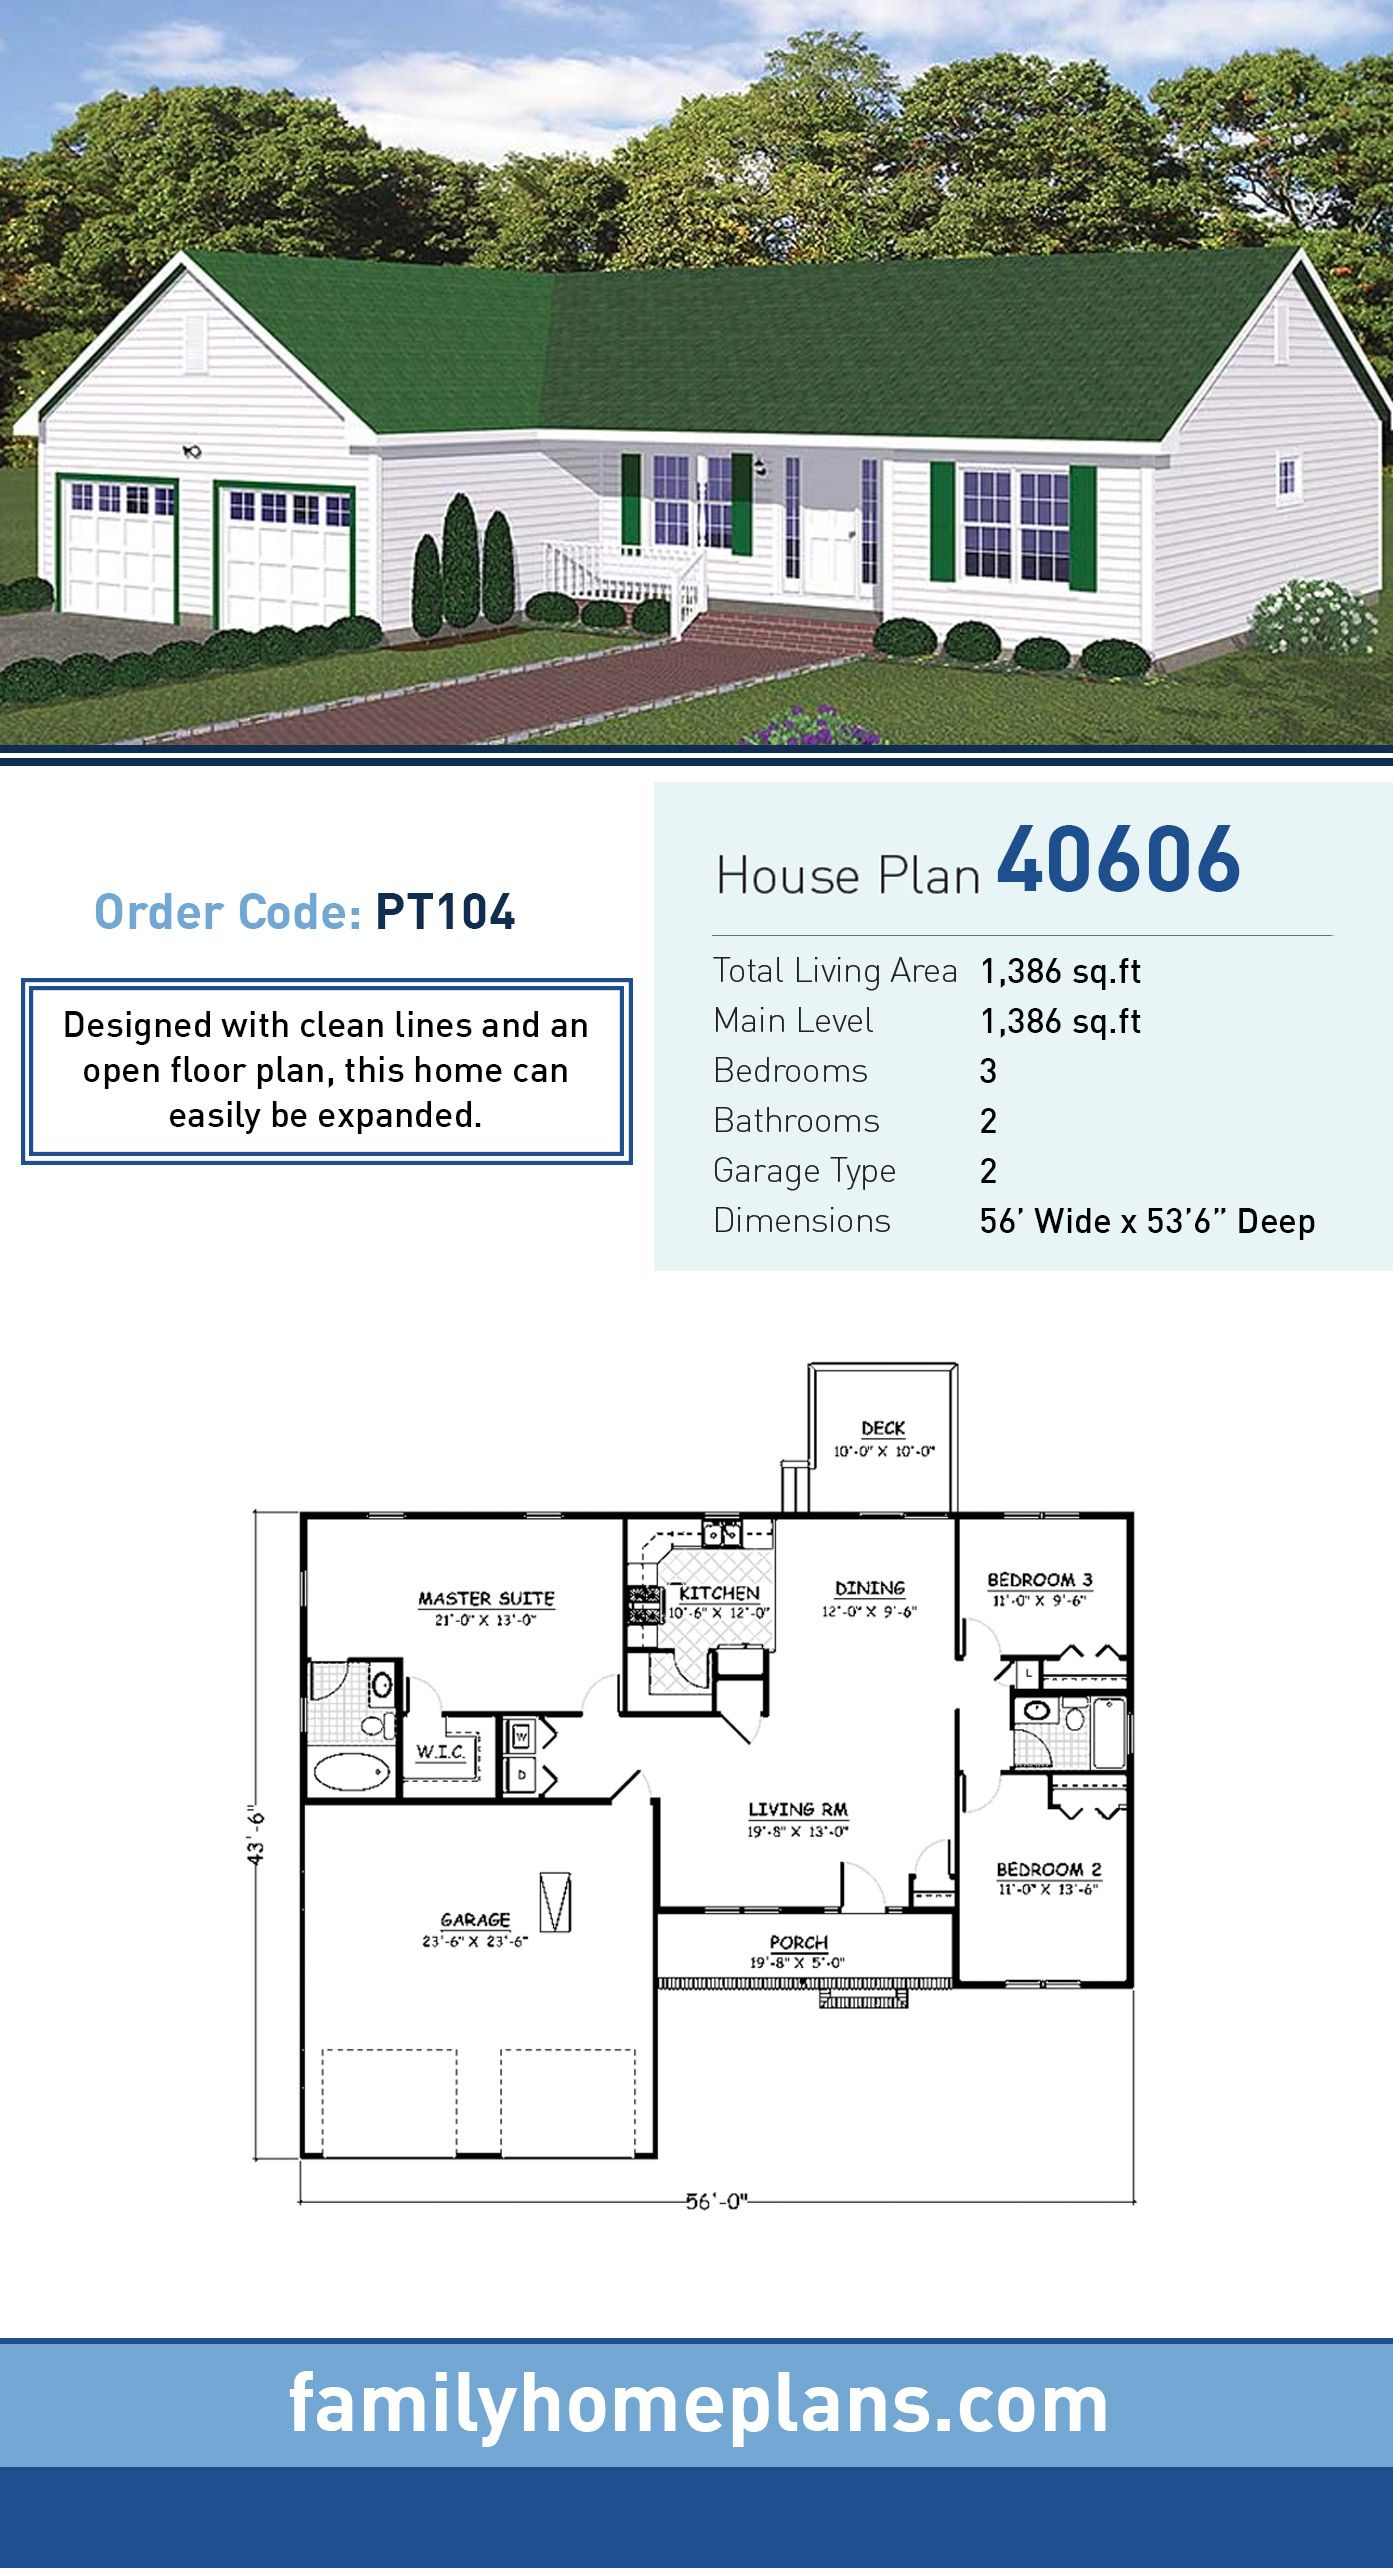 Traditional Style House Plan 40606 With 3 Bed 2 Bath 2 Car Garage Ranch House Plan My House Plans Ranch House Plans